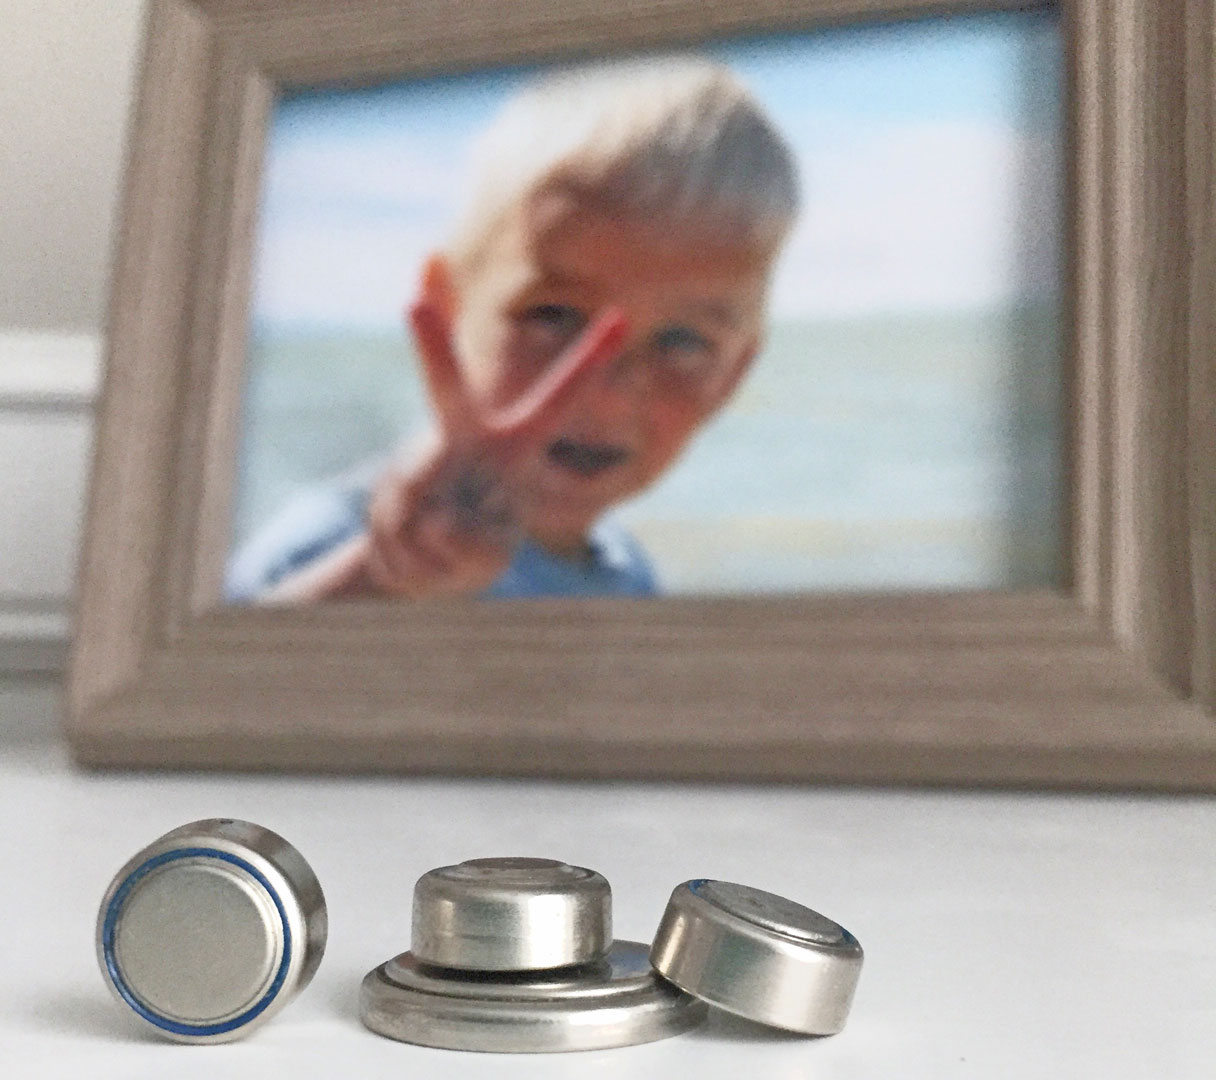 How Button Batteries Can Silently Kill Your Child